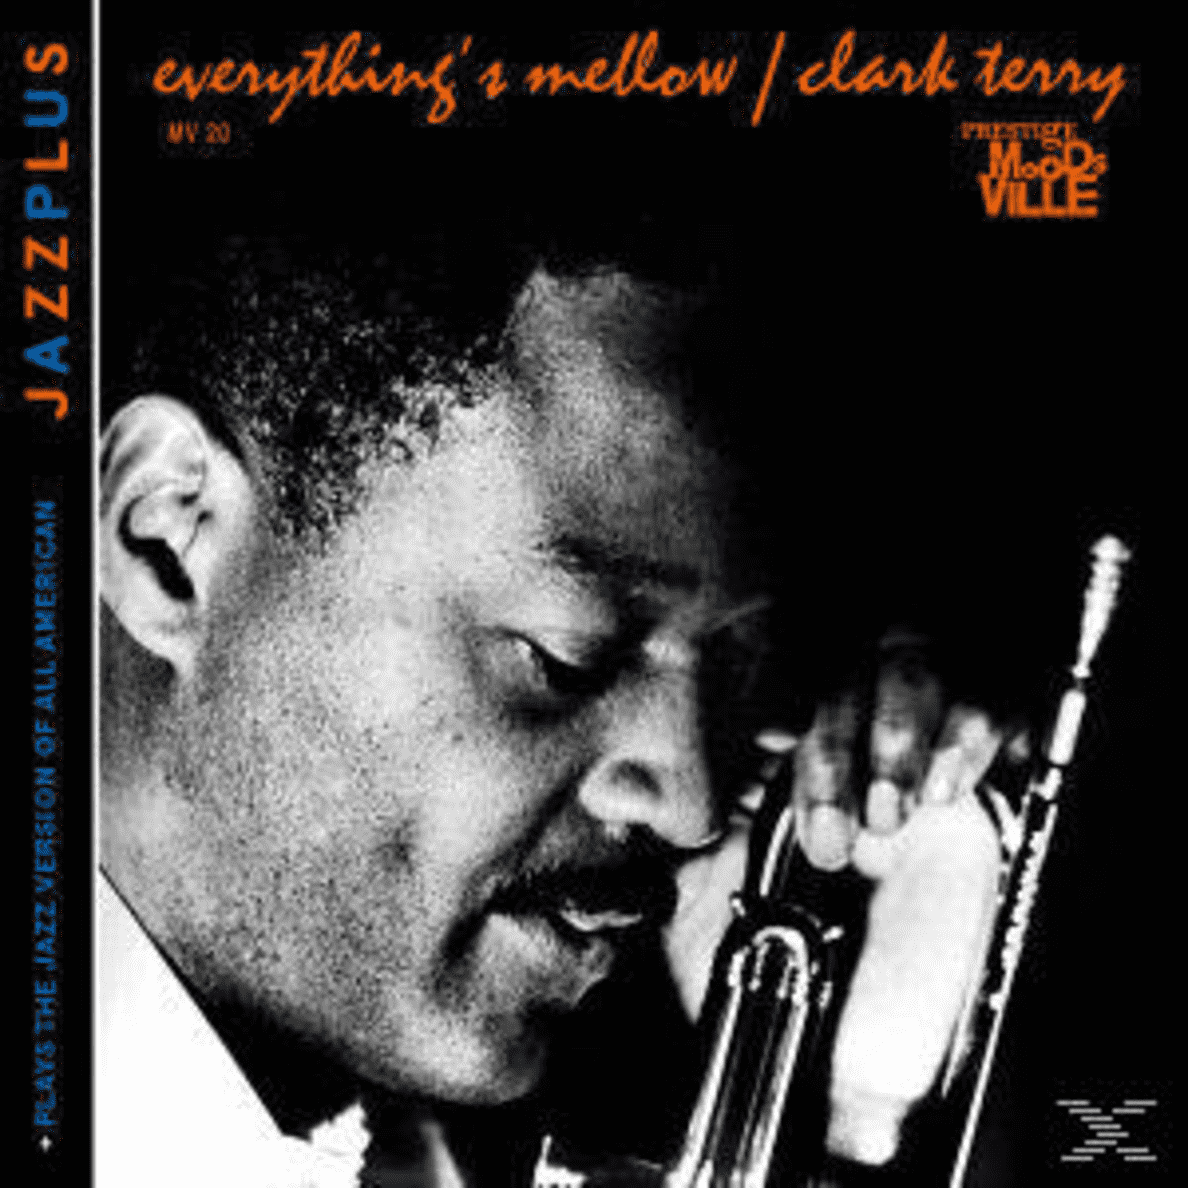 Clark Terry - Everything´s Mellow (+Plays The Jazz Version...) - (CD)